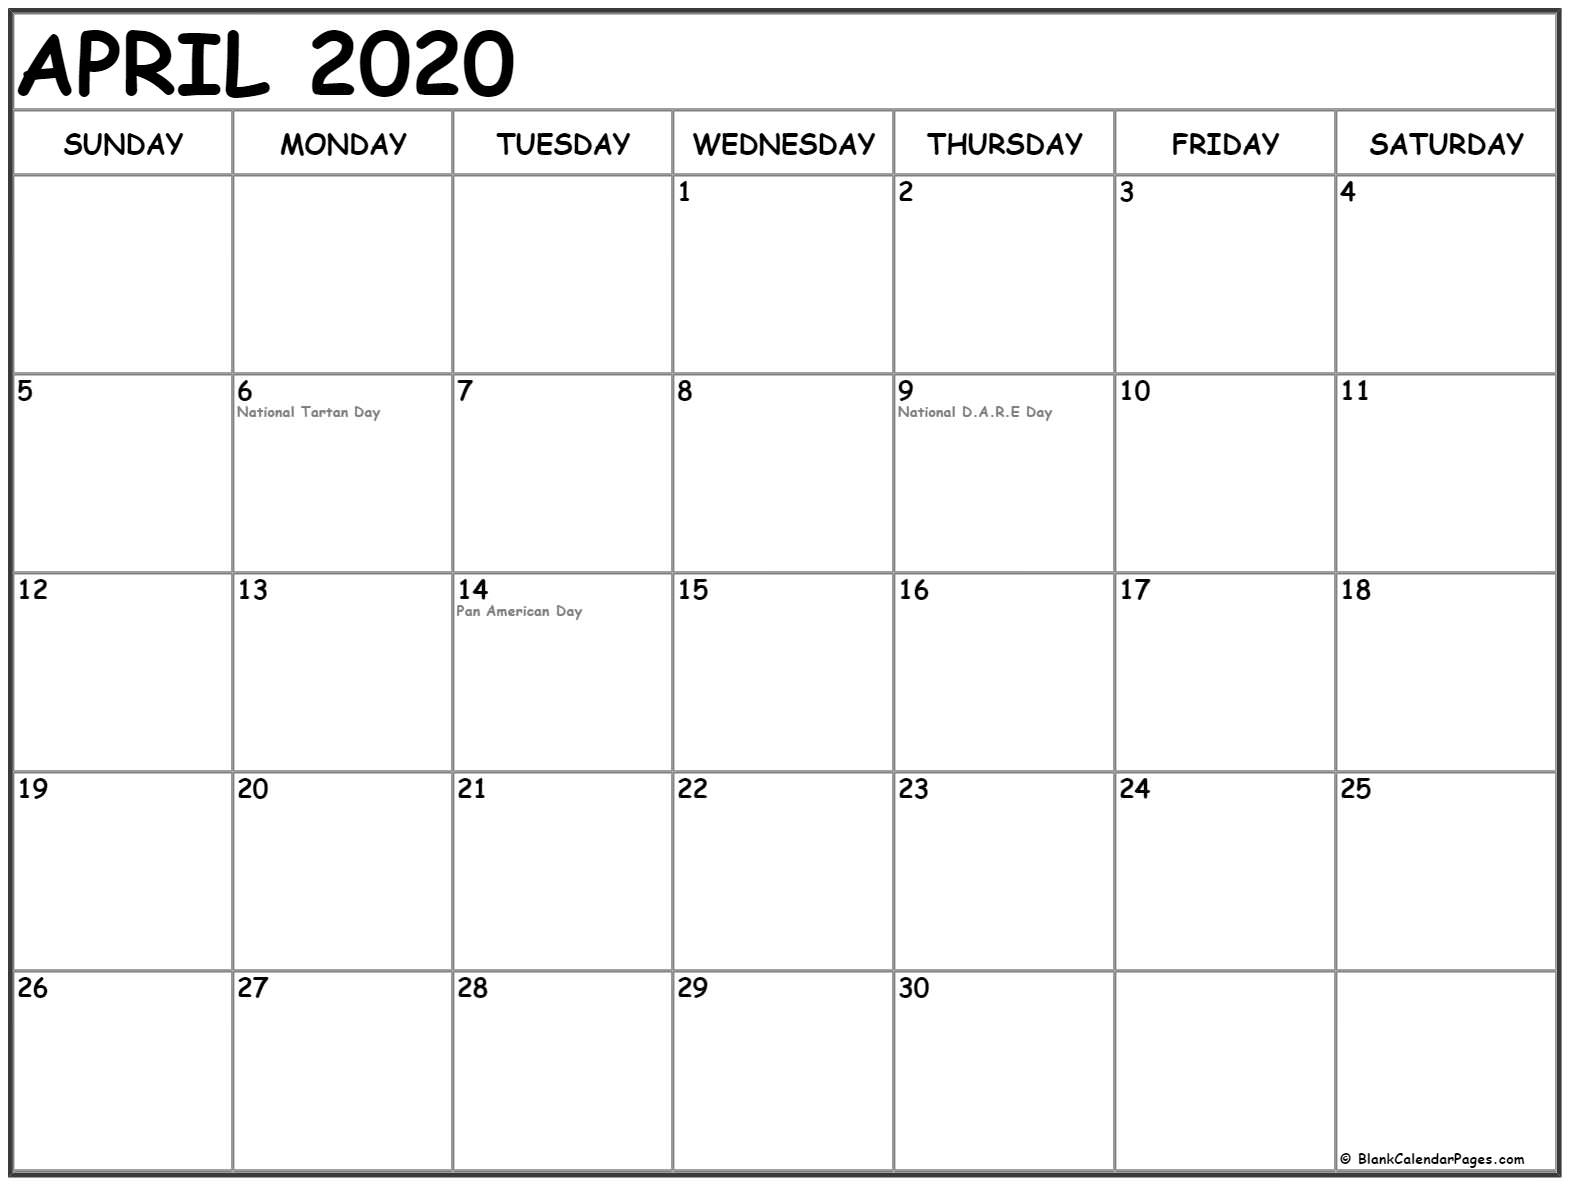 Collection Of April 2020 Calendars With Holidays Dashing 2020 Holiday Calendar Federal